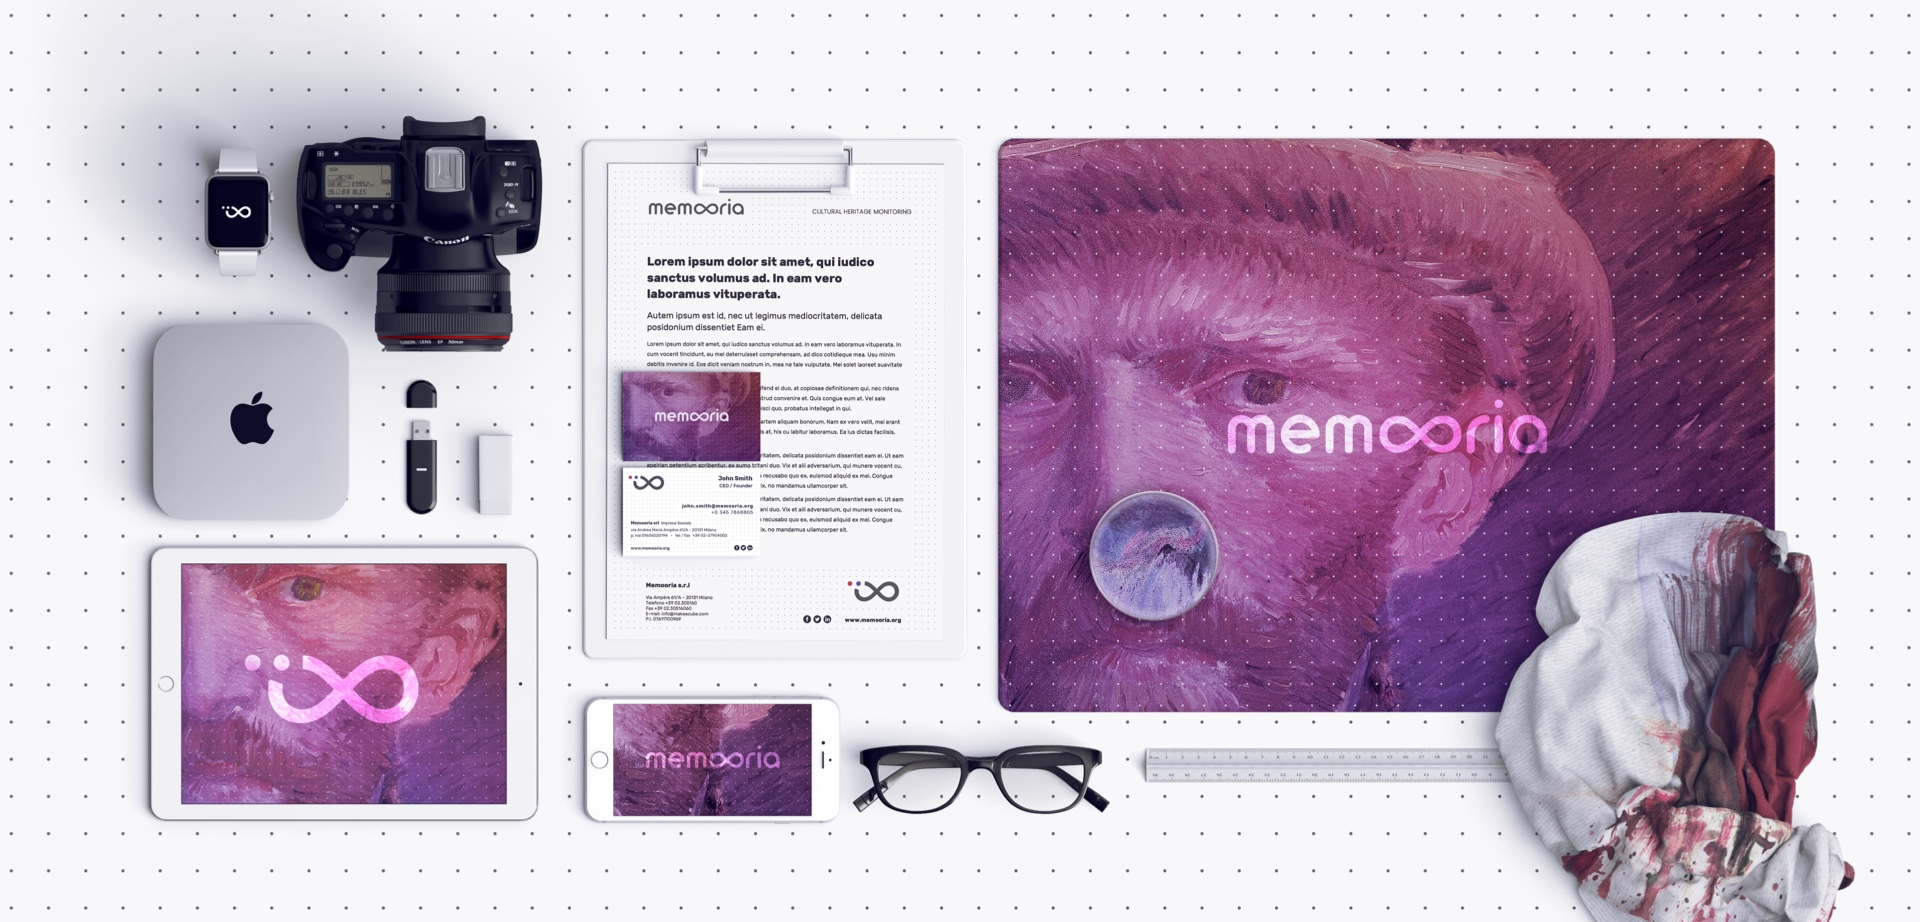 Memooria stationary. Branding for a start-up in the art monitoring field by Fabio Besti